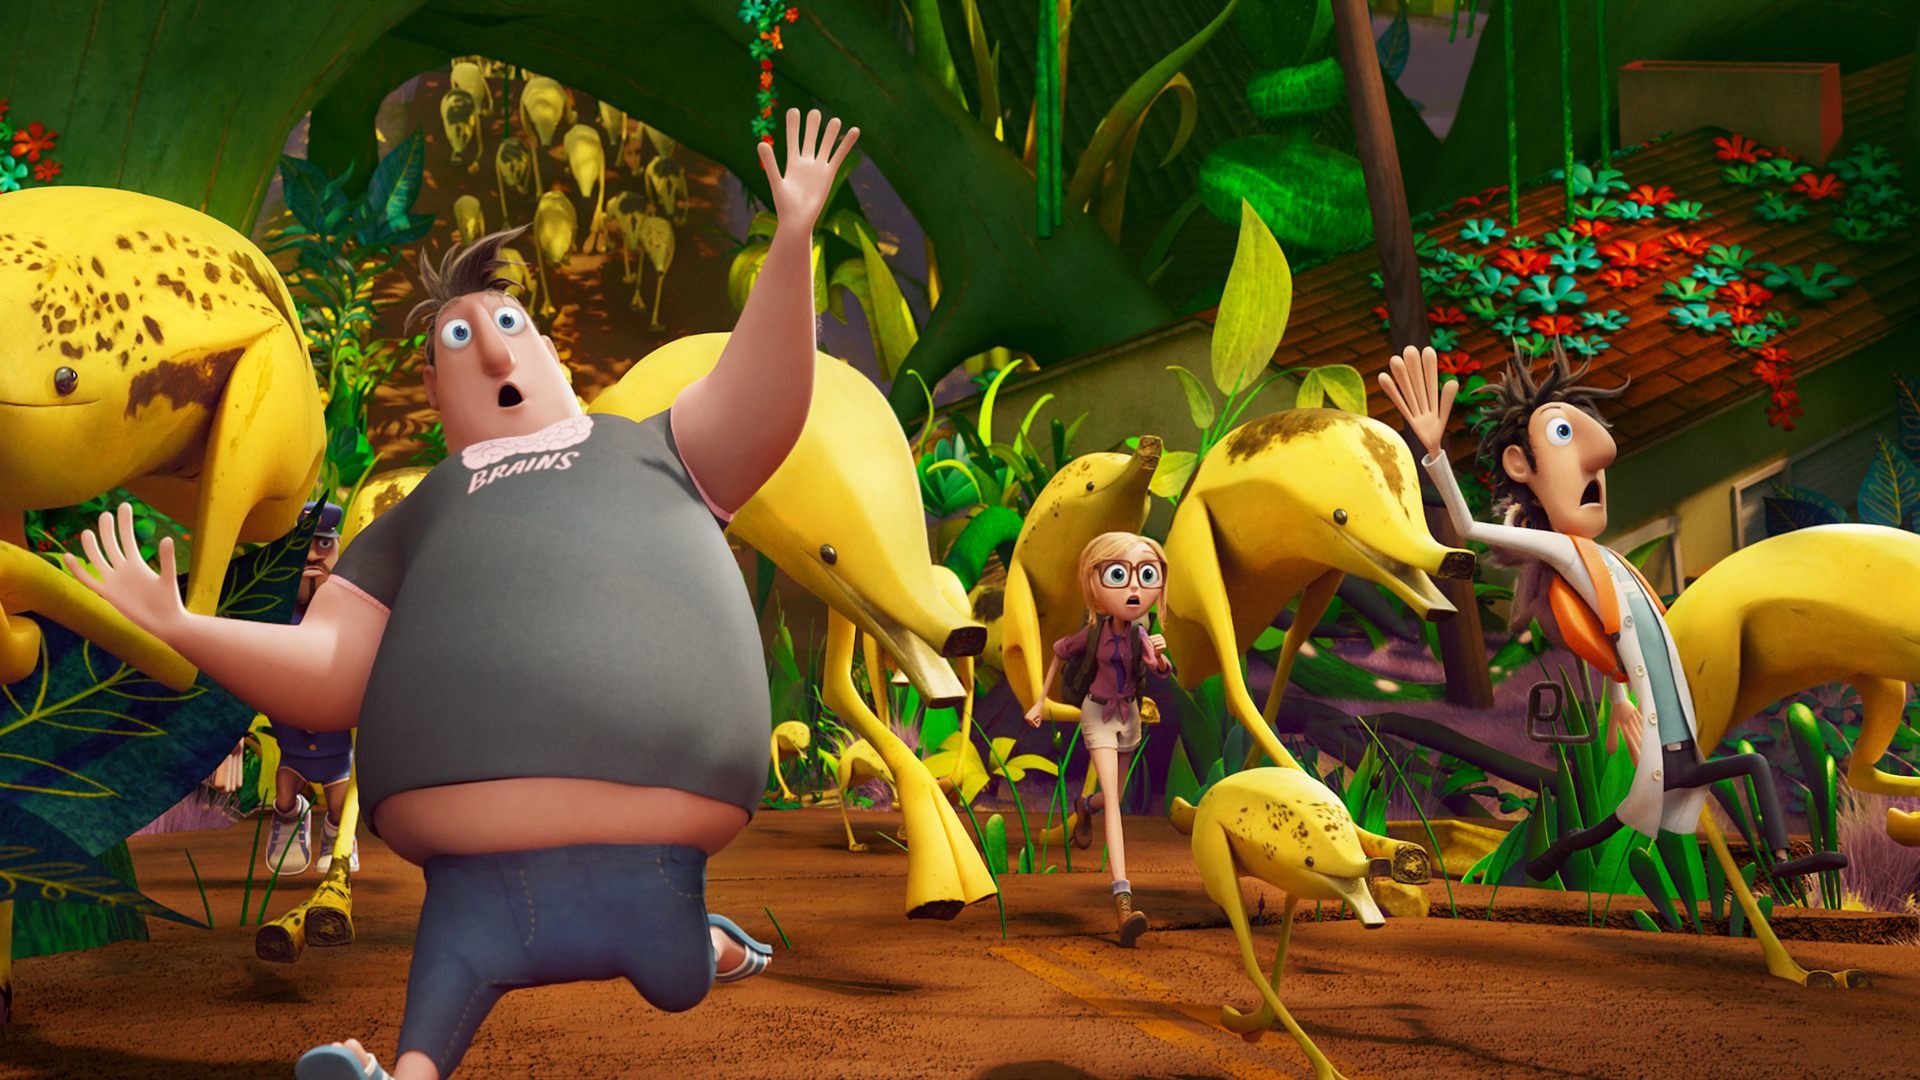 Cloudy With A Chance Of Meatballs 2 Full HD Wallpaper And Background